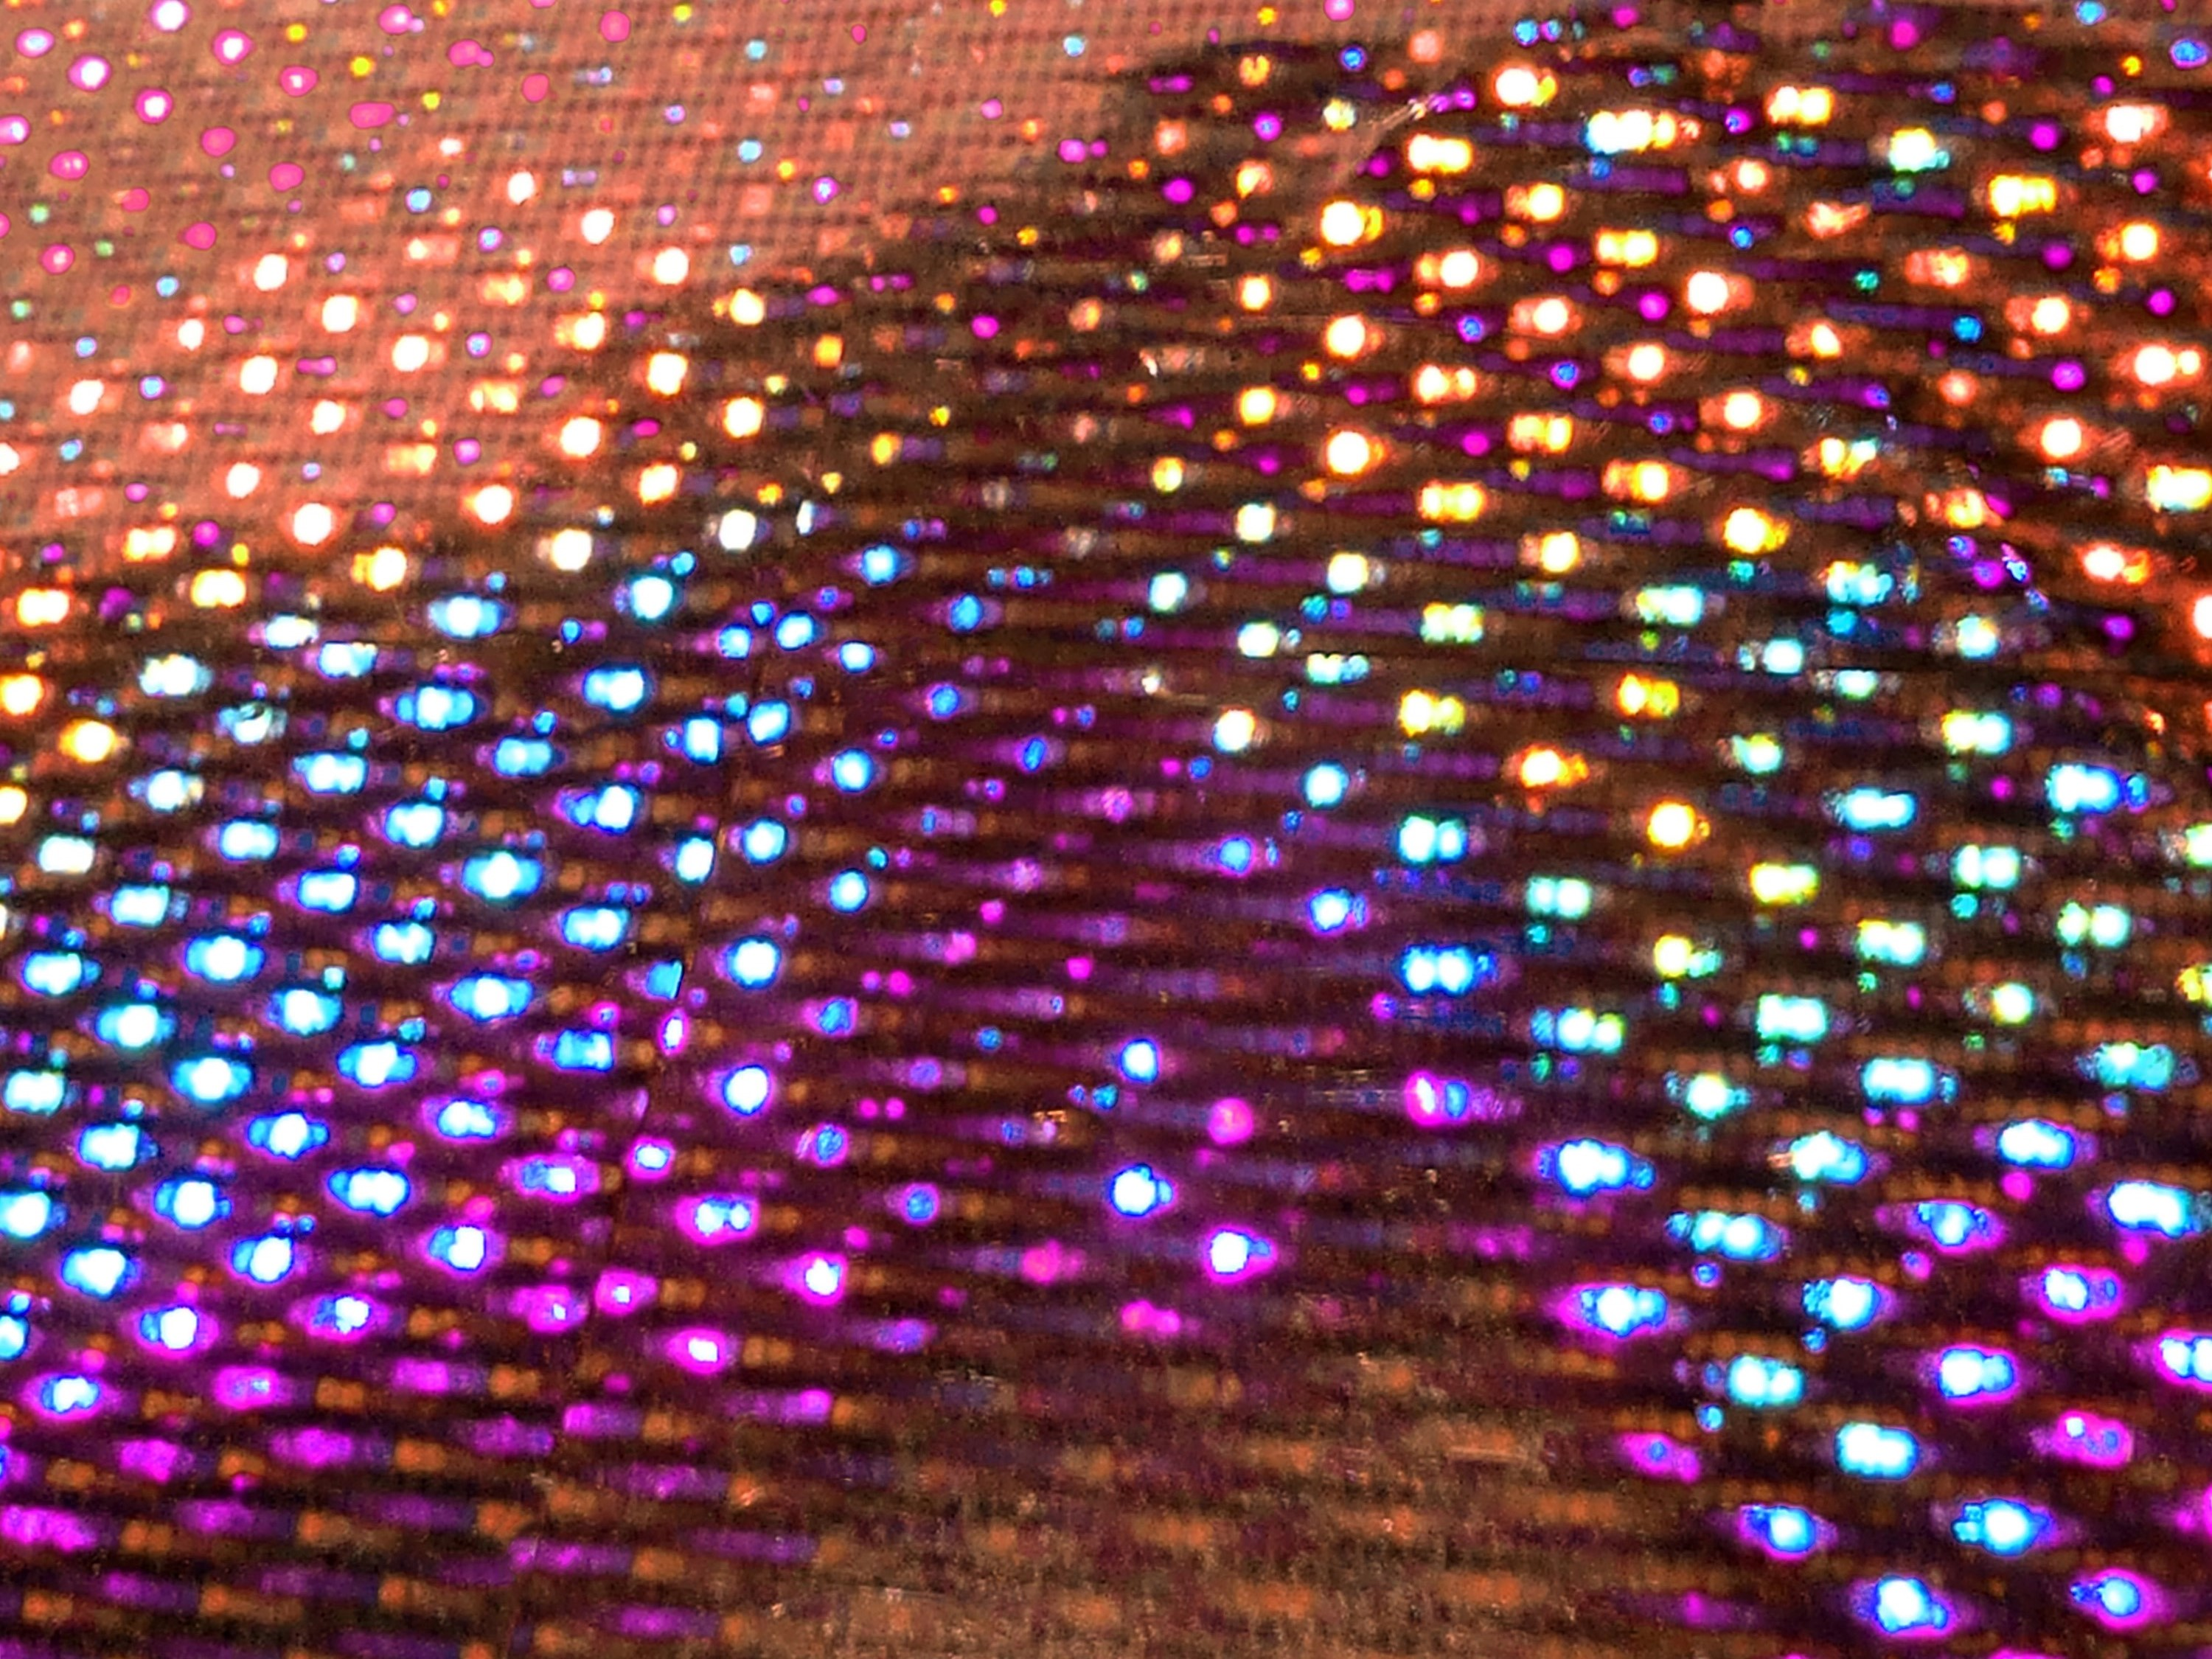 angled image of a sheet of holographic material with lots of colorful points of light